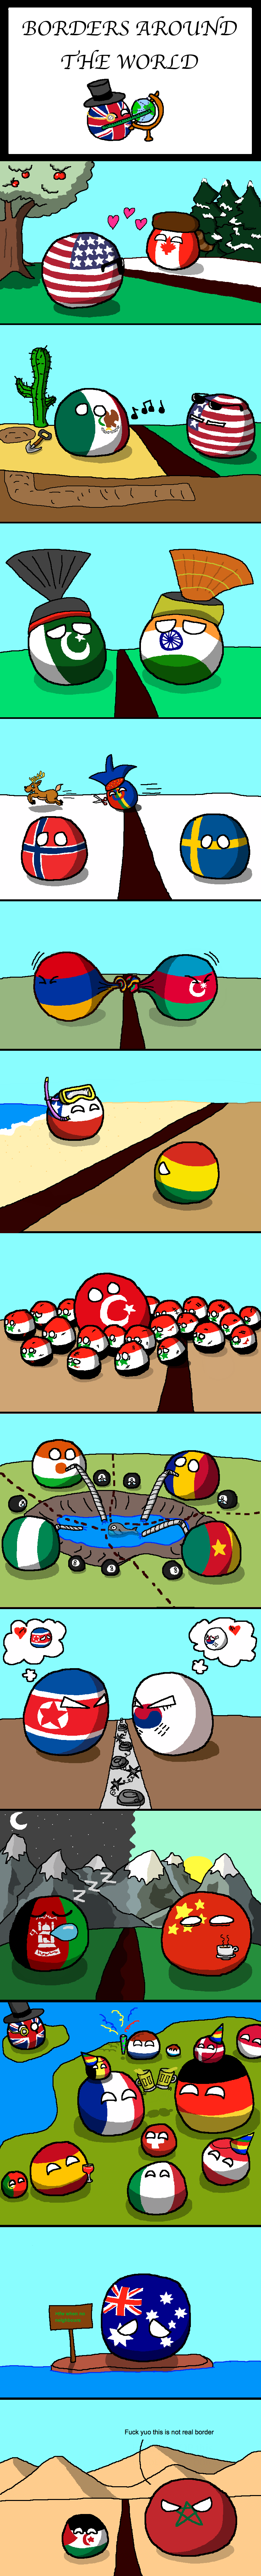 country-balls-borders-around-the-world